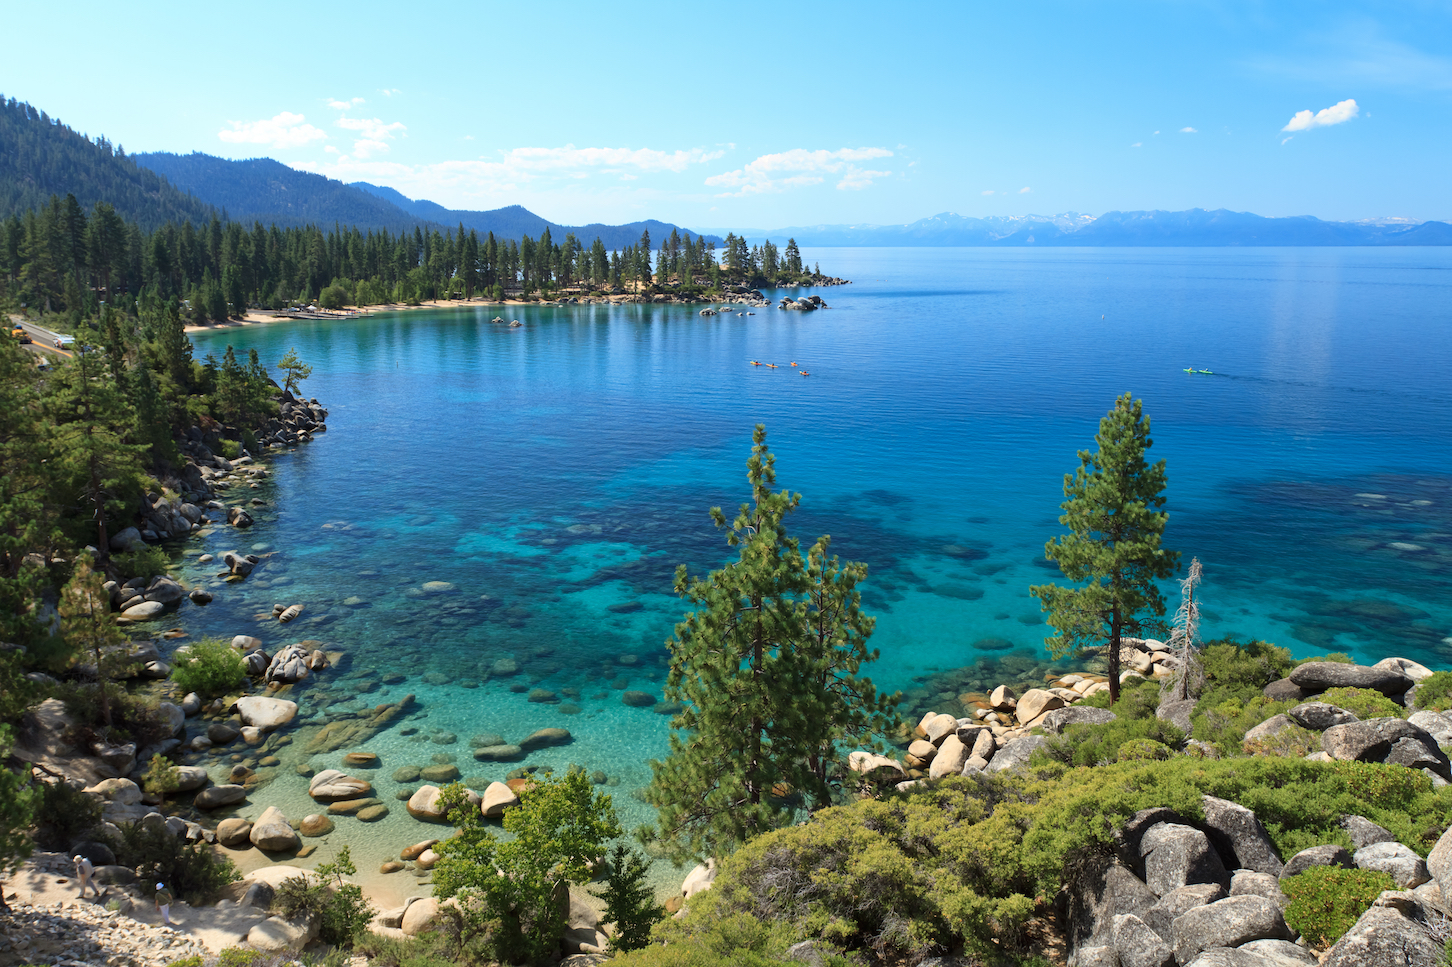 Lake evaporation is a strong indicator of how the earth's lakes and oceans are responding to climate change, and it's been predicted that lake evaporation will increase by 16 percent by the end of the century.